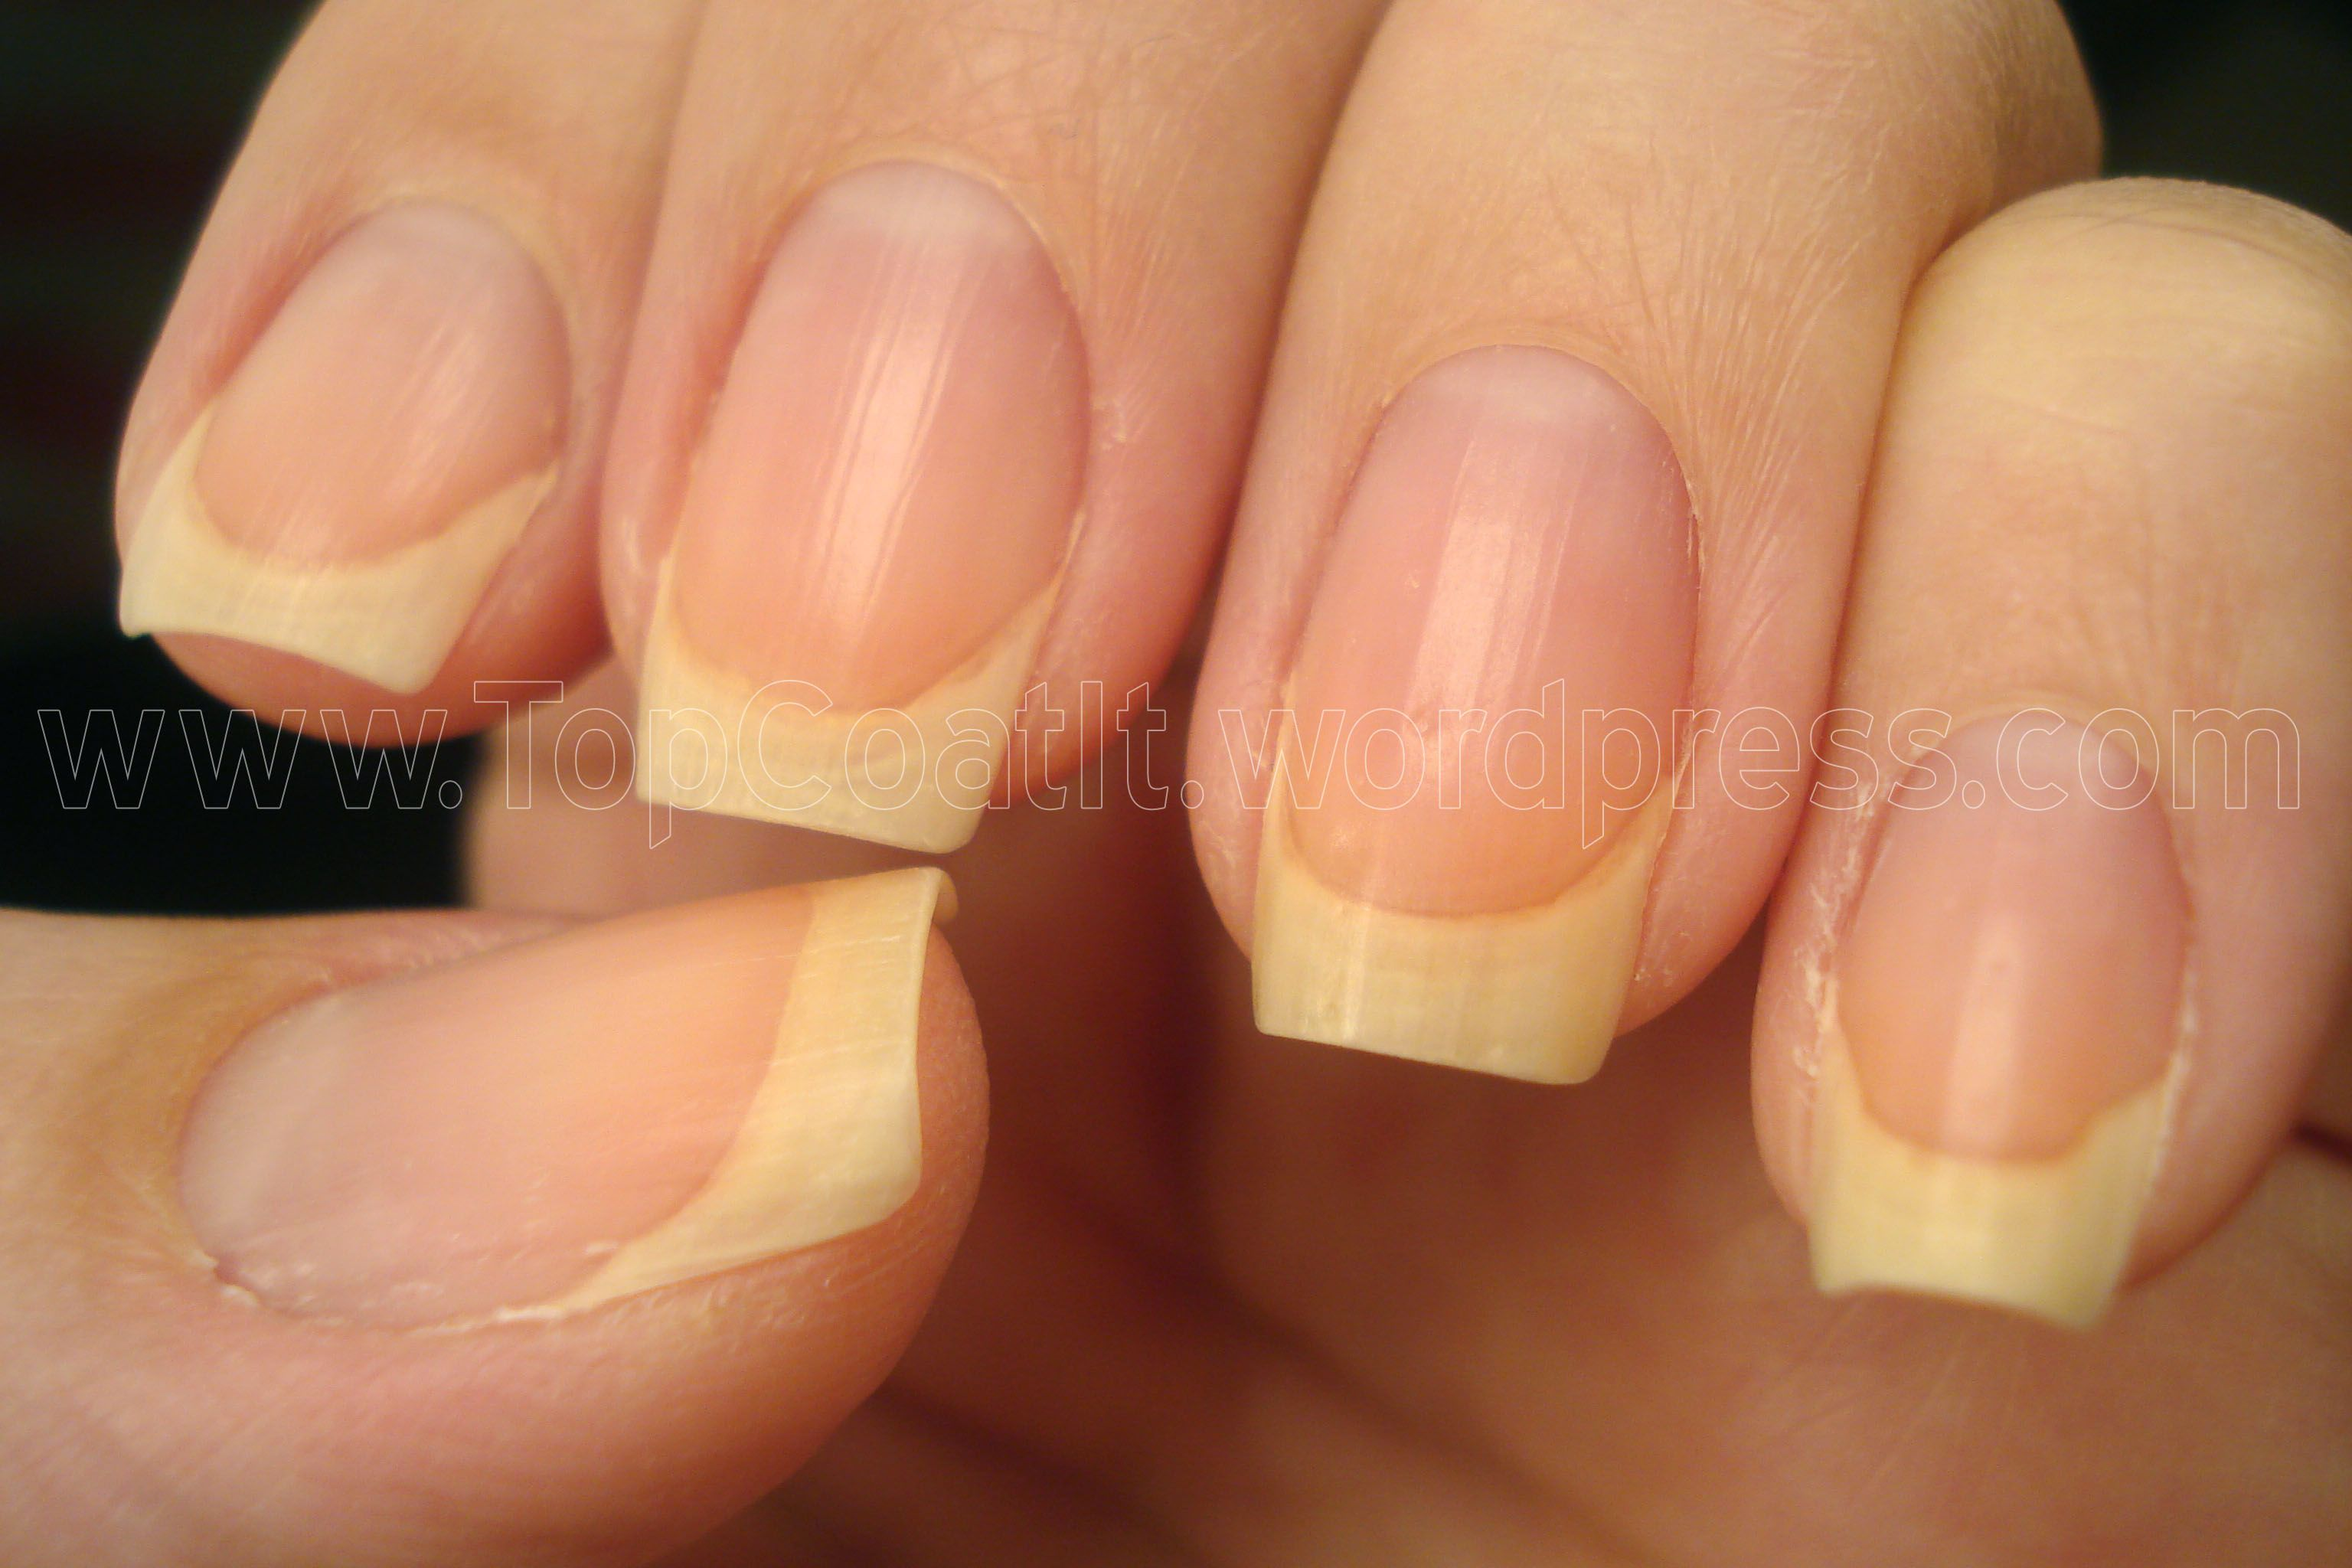 Nail care. I need to get better at moisturizing my cuticles and ...